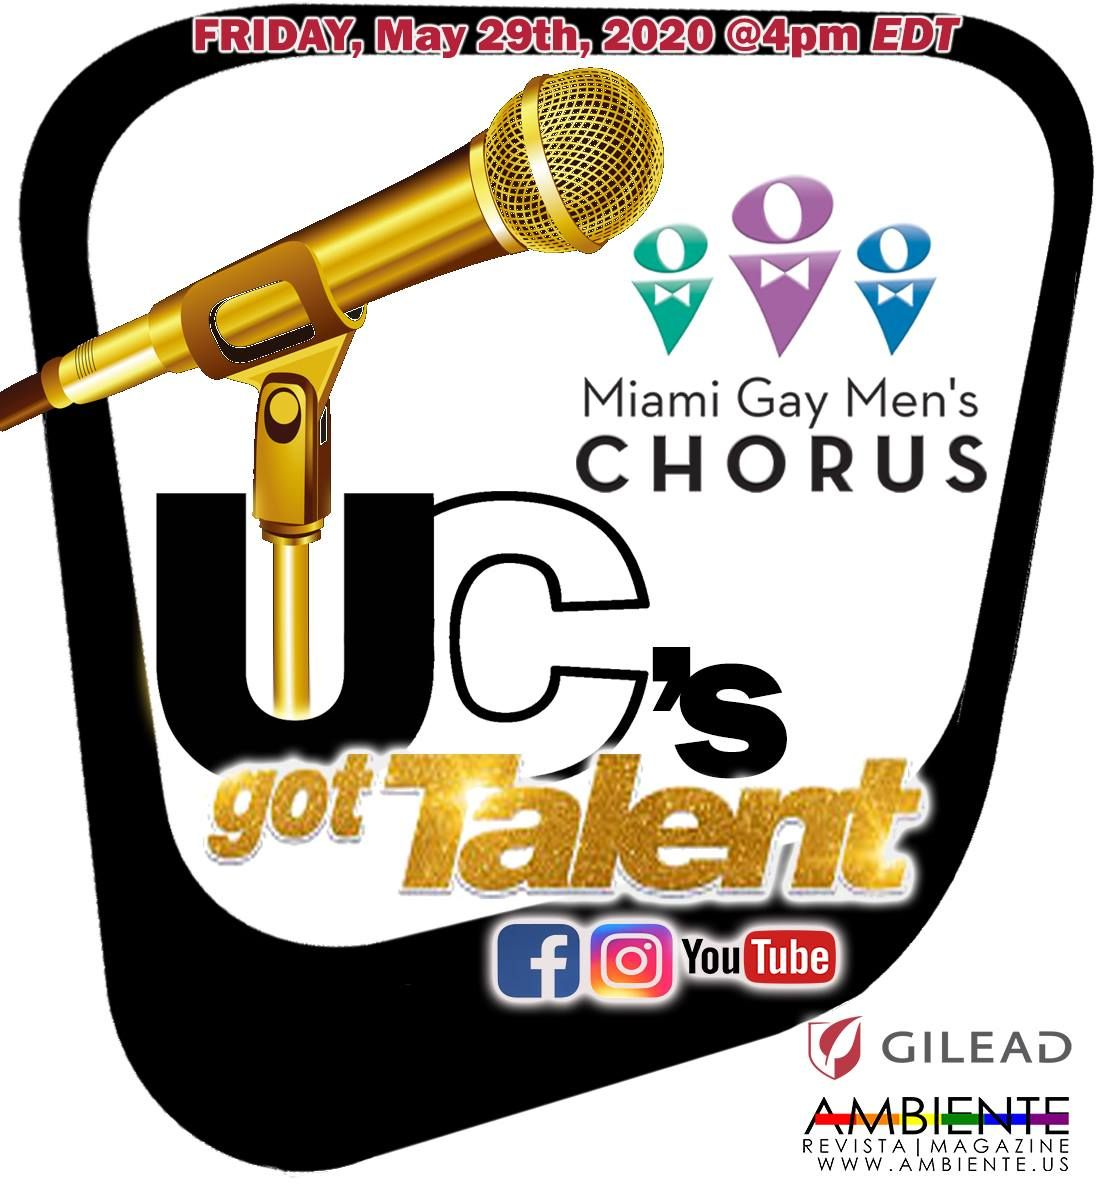 Catch us on UCTV live this Friday, May 29, 2020 at 4pm ET. Check http://tiny.cc/UCTVYouTube and subscribe to their channel. See you Friday! . #coralgables #gaymiami #glbt #glbtq #lesbian #lgbt #lgbtq #love #miami #miamibeach #miamigay #miamigaychorus #queer #sing #singer #singerspic.twitter.com/mTD35VmTOl